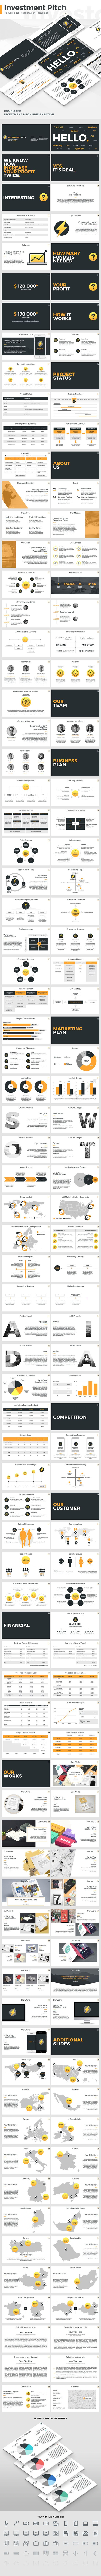 Investment pitch powerpoint template business powerpoint investment pitch powerpoint template business powerpoint templates download here https toneelgroepblik Gallery